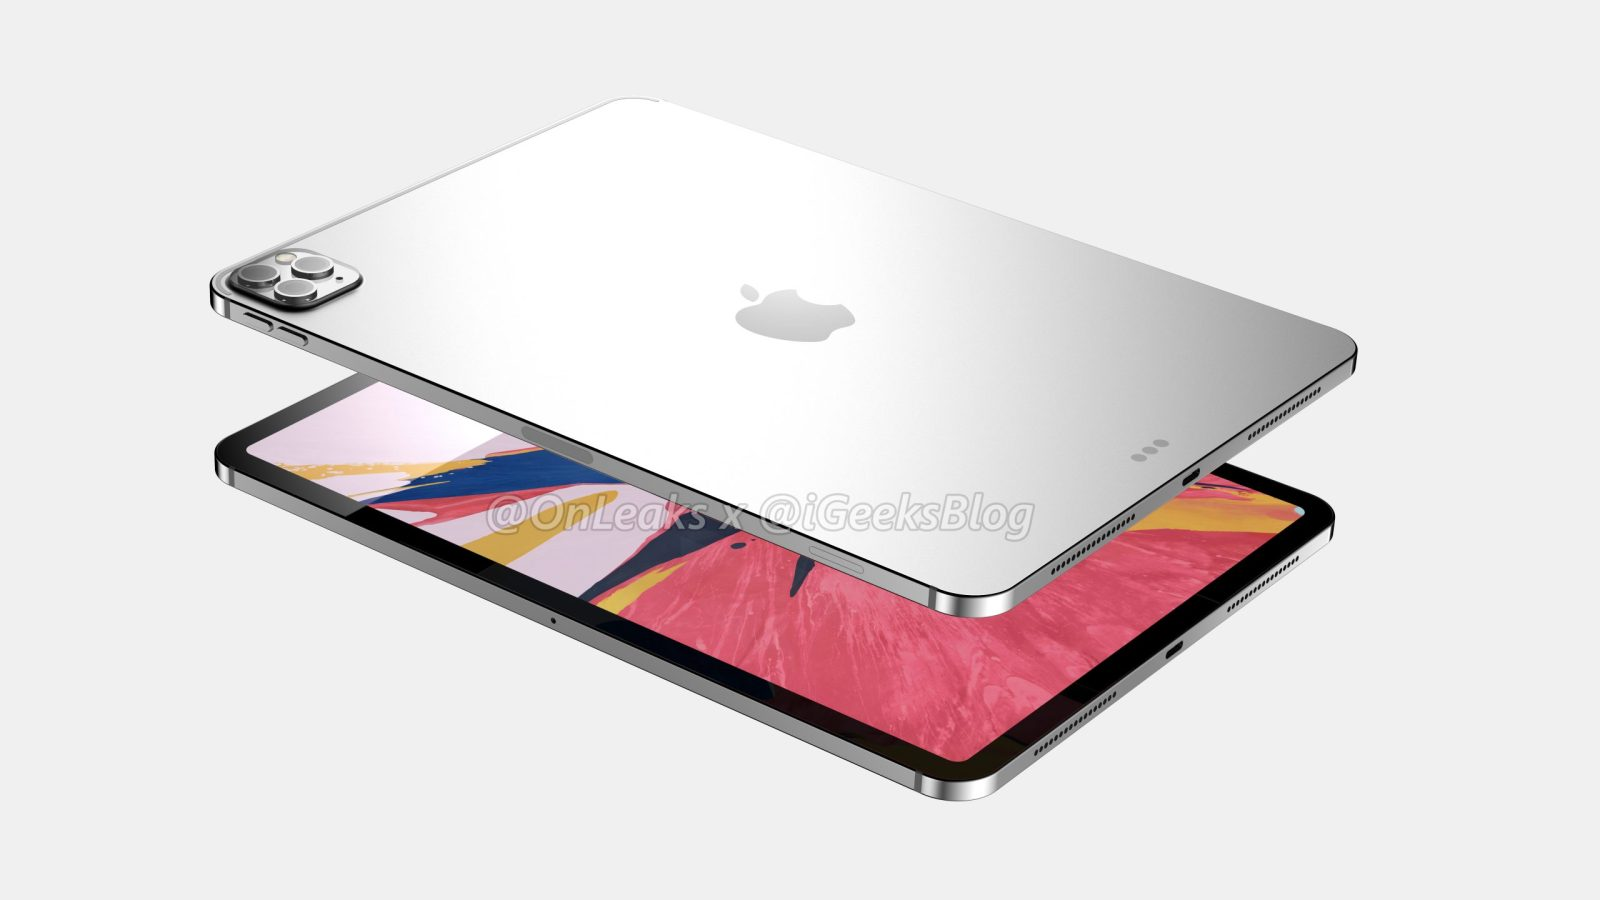 Digitimes New 12 Inch Ipad Pro In Production With 3d Sensing